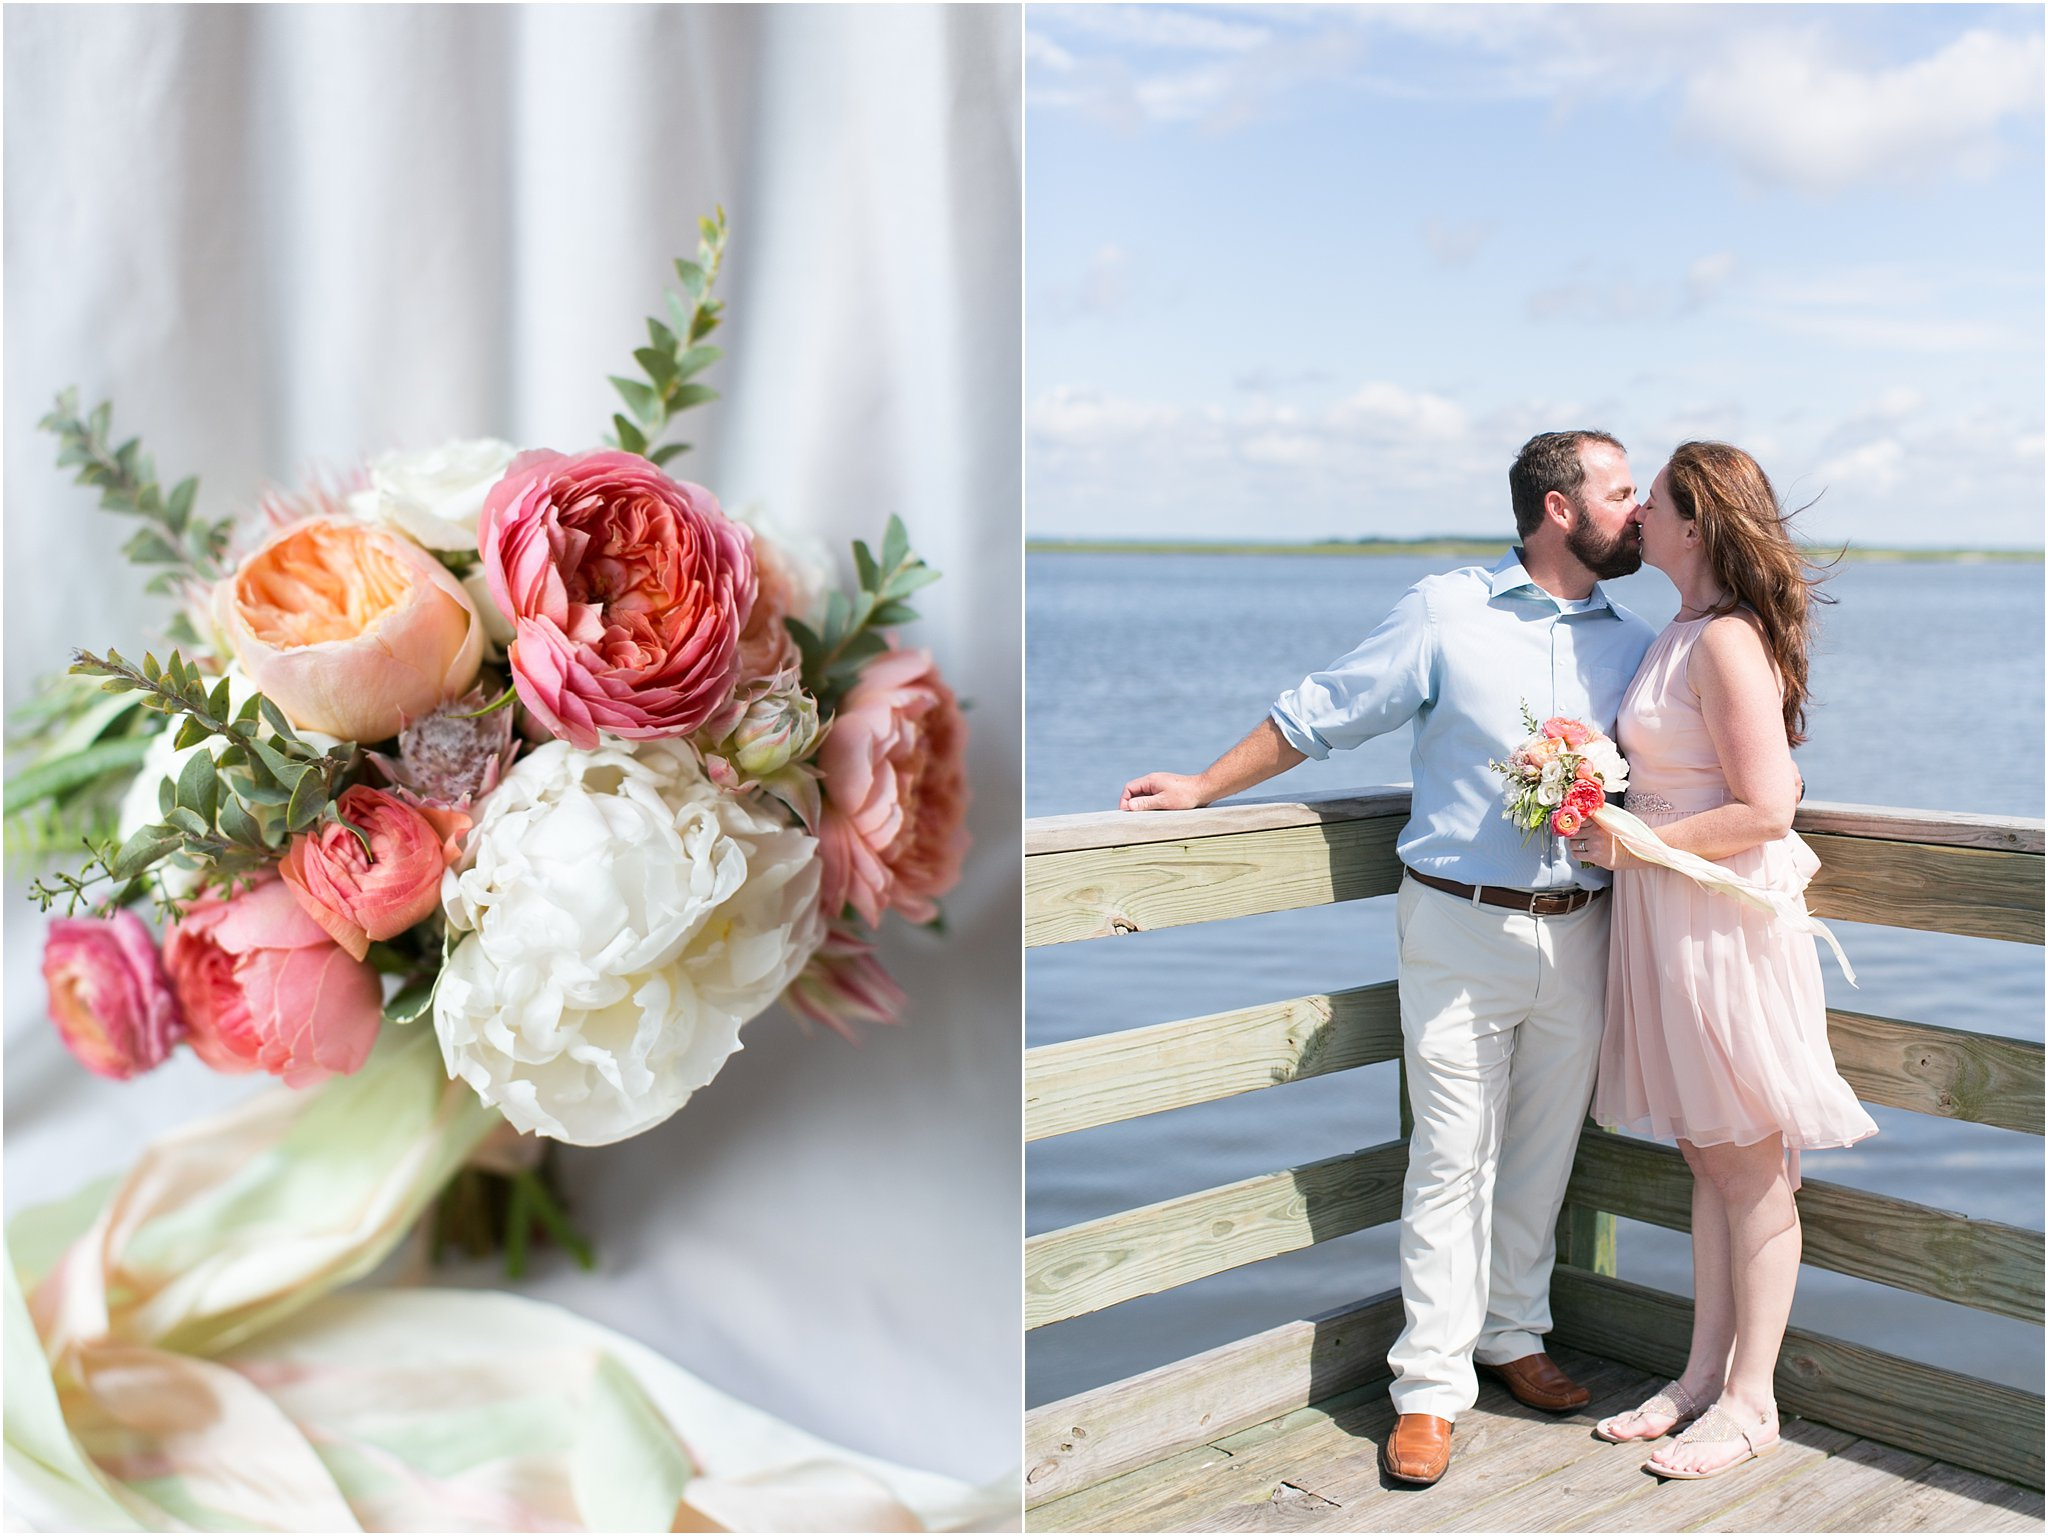 jessica_ryan_photography_wedding_photography_virginiabeach_virginia_candid_authentic_wedding_florida_wedding_photographer_amelia_island_fernandina_beach_1977